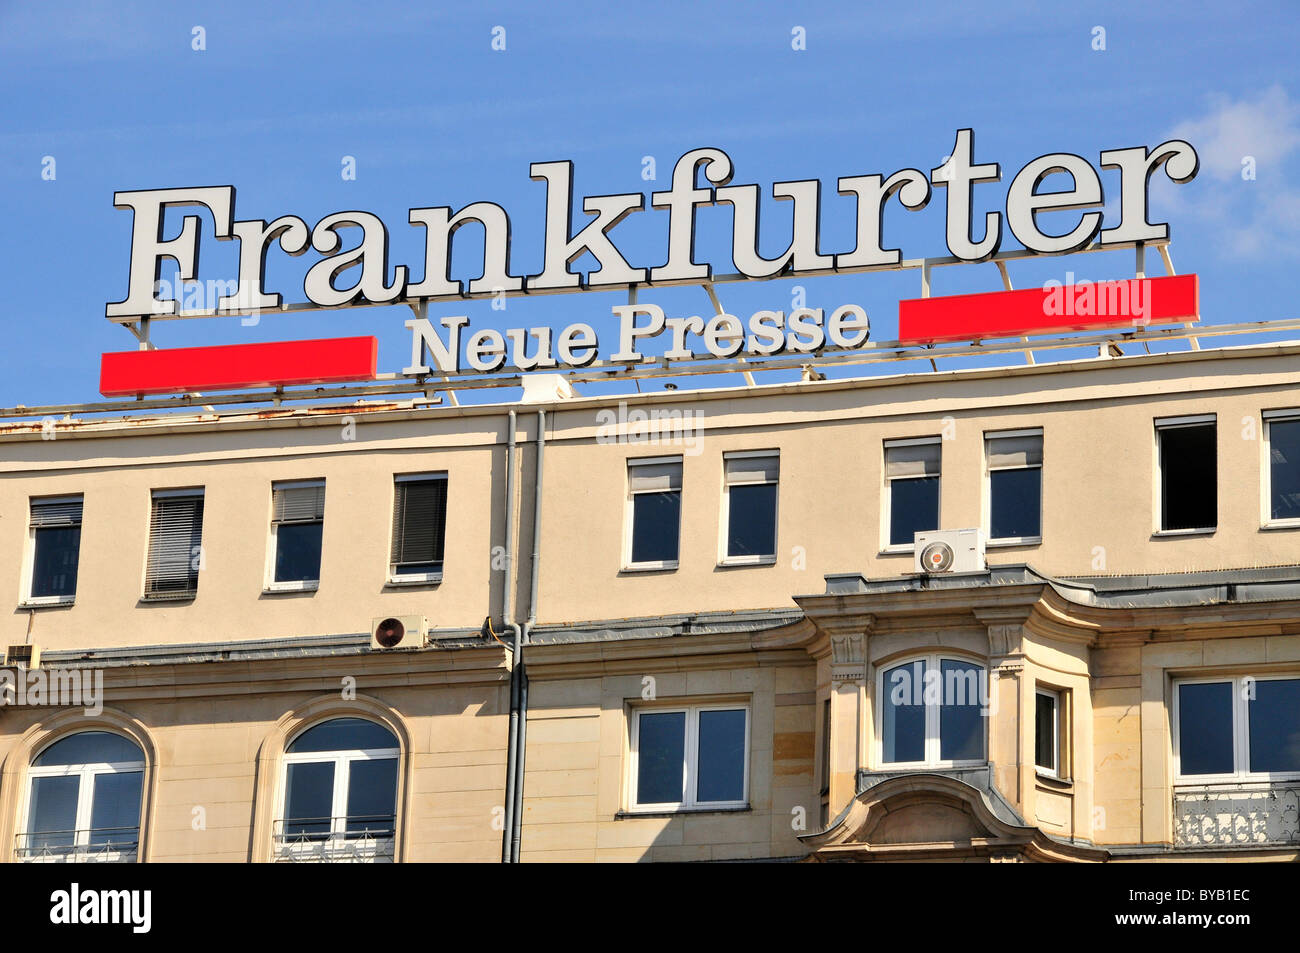 Facade at the main train station with ads for the Frankfurter Neue Presse, Frankfurt, Hesse, Germany, Europe - Stock Image